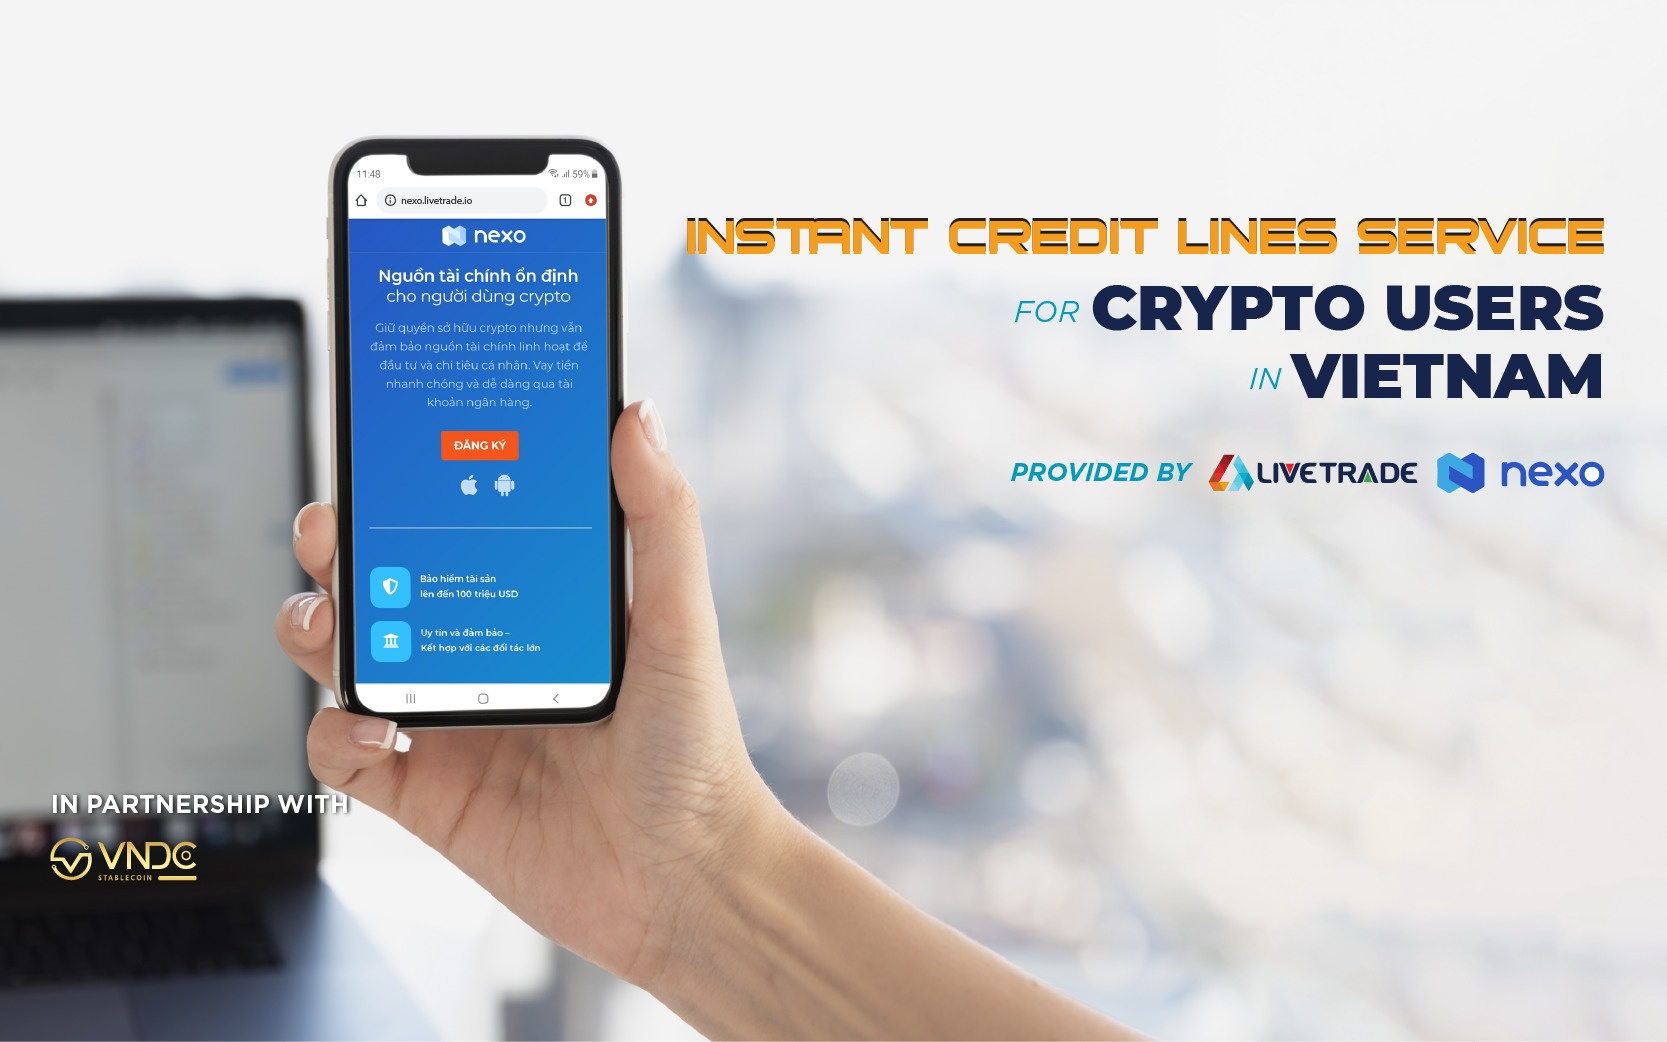 LiveTrade Establishes Partnership with Nexo to Deploy the Instant Crypto Credit Lines™ in Vietnam